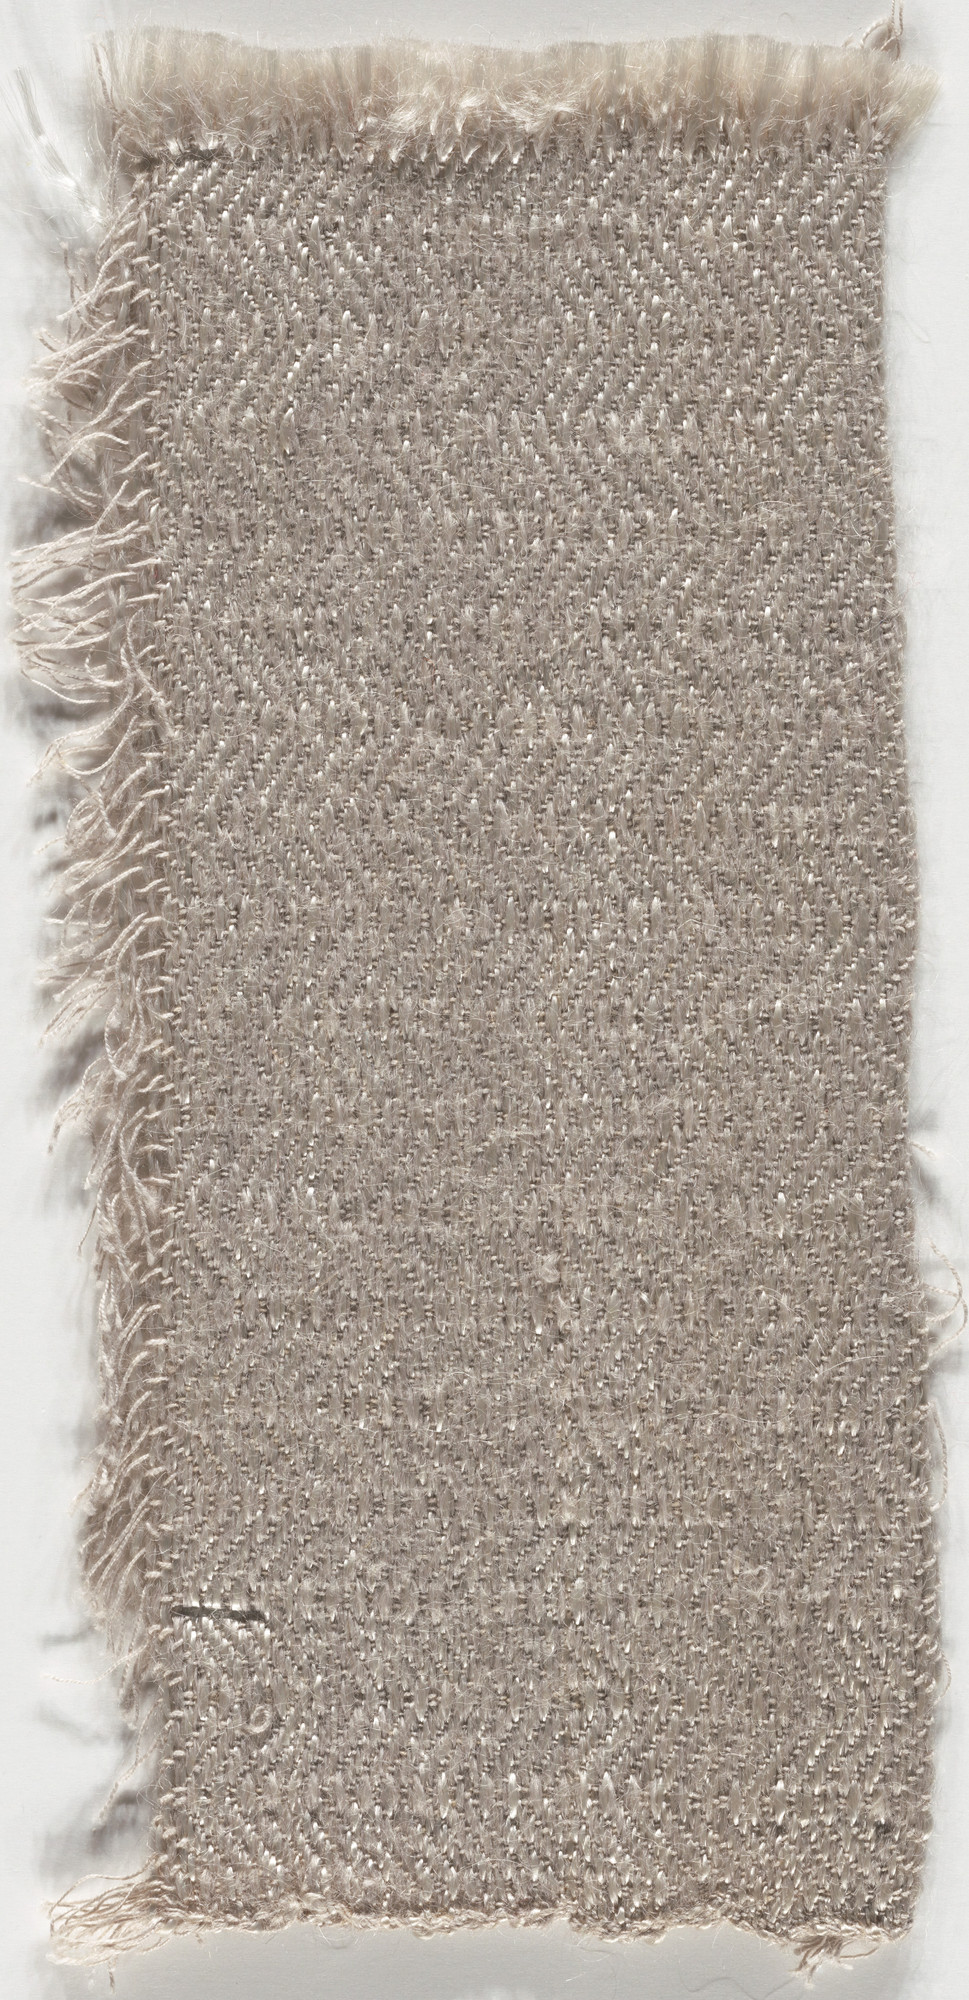 Anni Albers. Upholstery Material. 1923-26